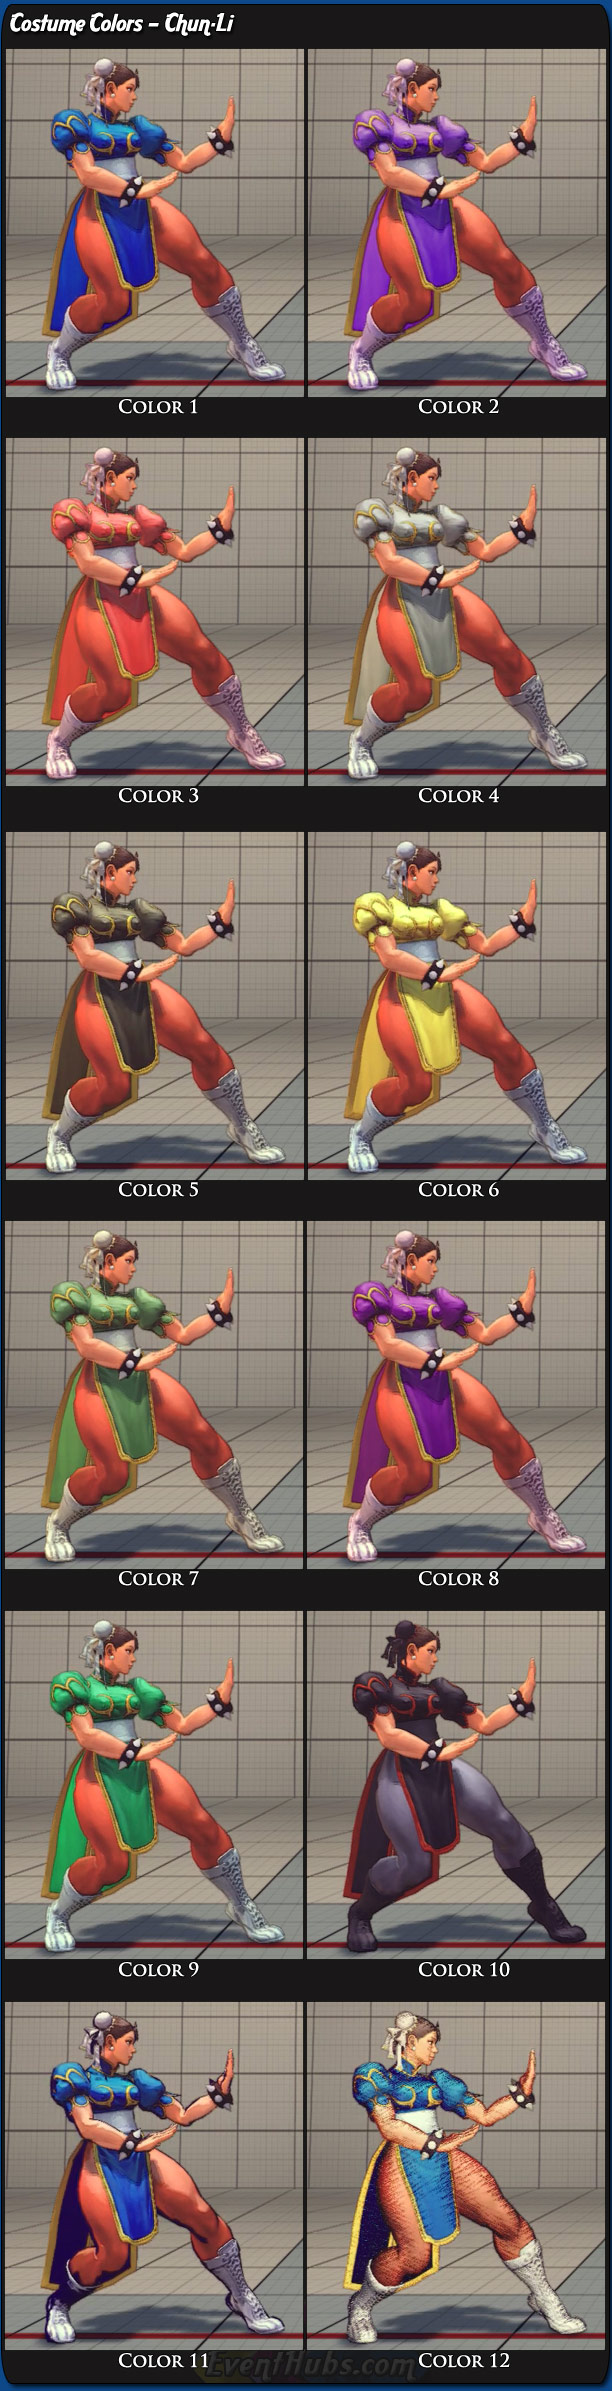 Chun-Li's main costume colors for Super Street Fighter 4